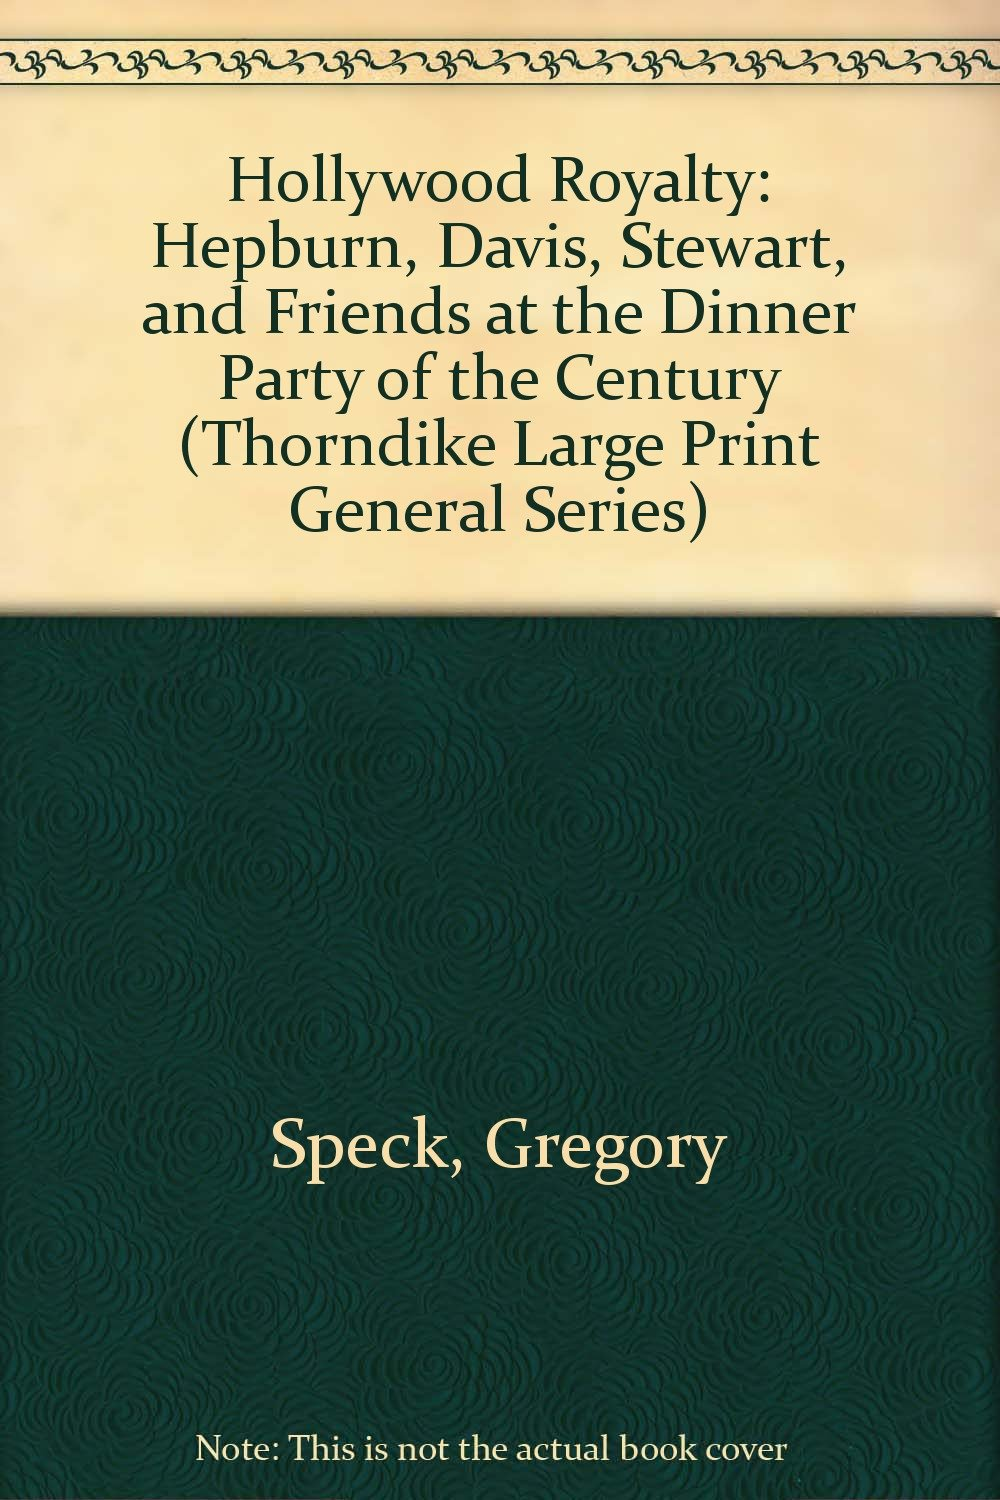 Hollywood Royalty: Hepburn Davis Stewart and Friends at the Dinner Party of the Century (Thorndike Large Print General Series)